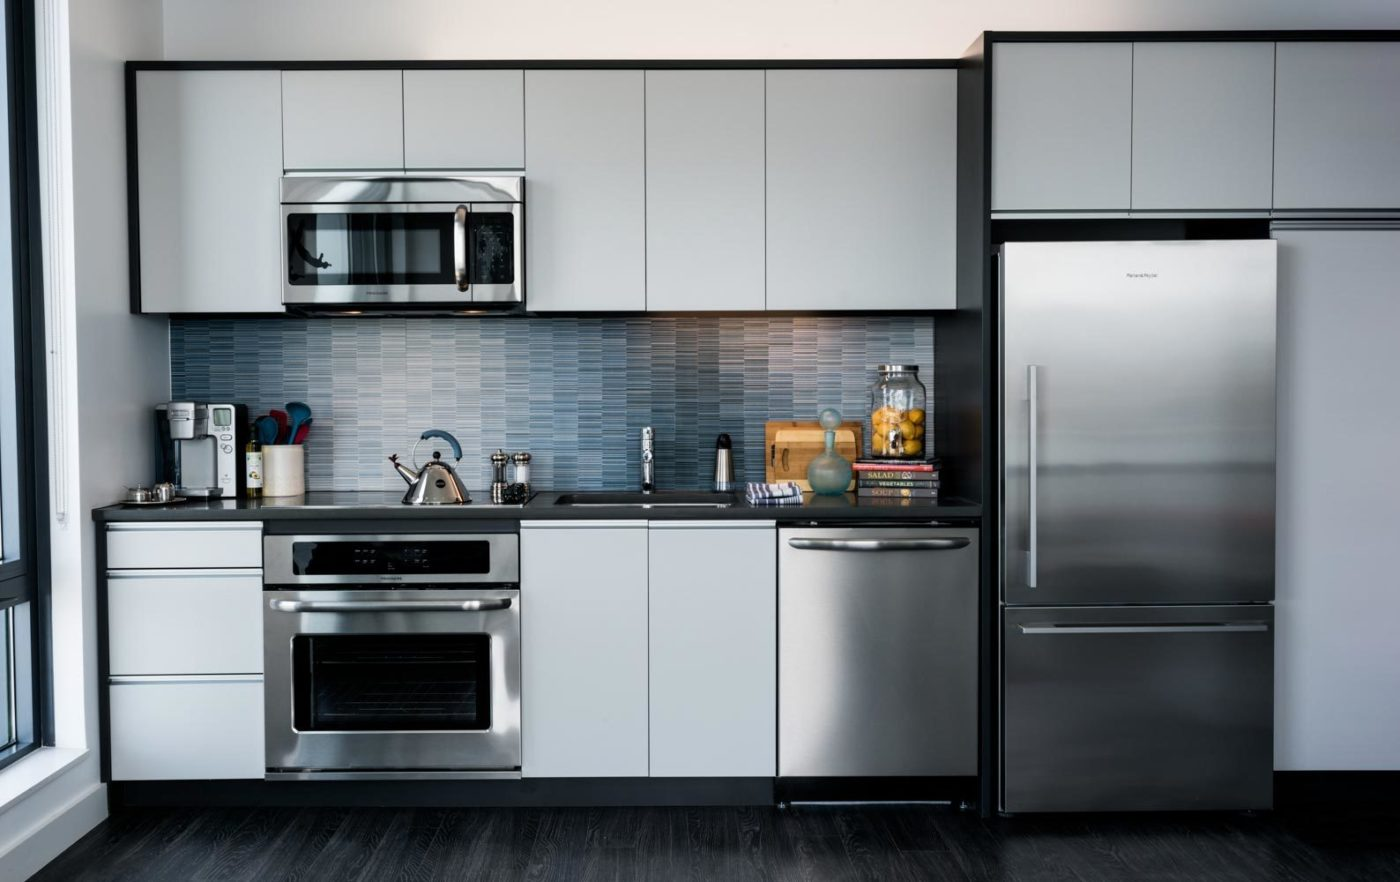 Eddy East Boston apartment kitchen with stainless steel appliances and white cabinets